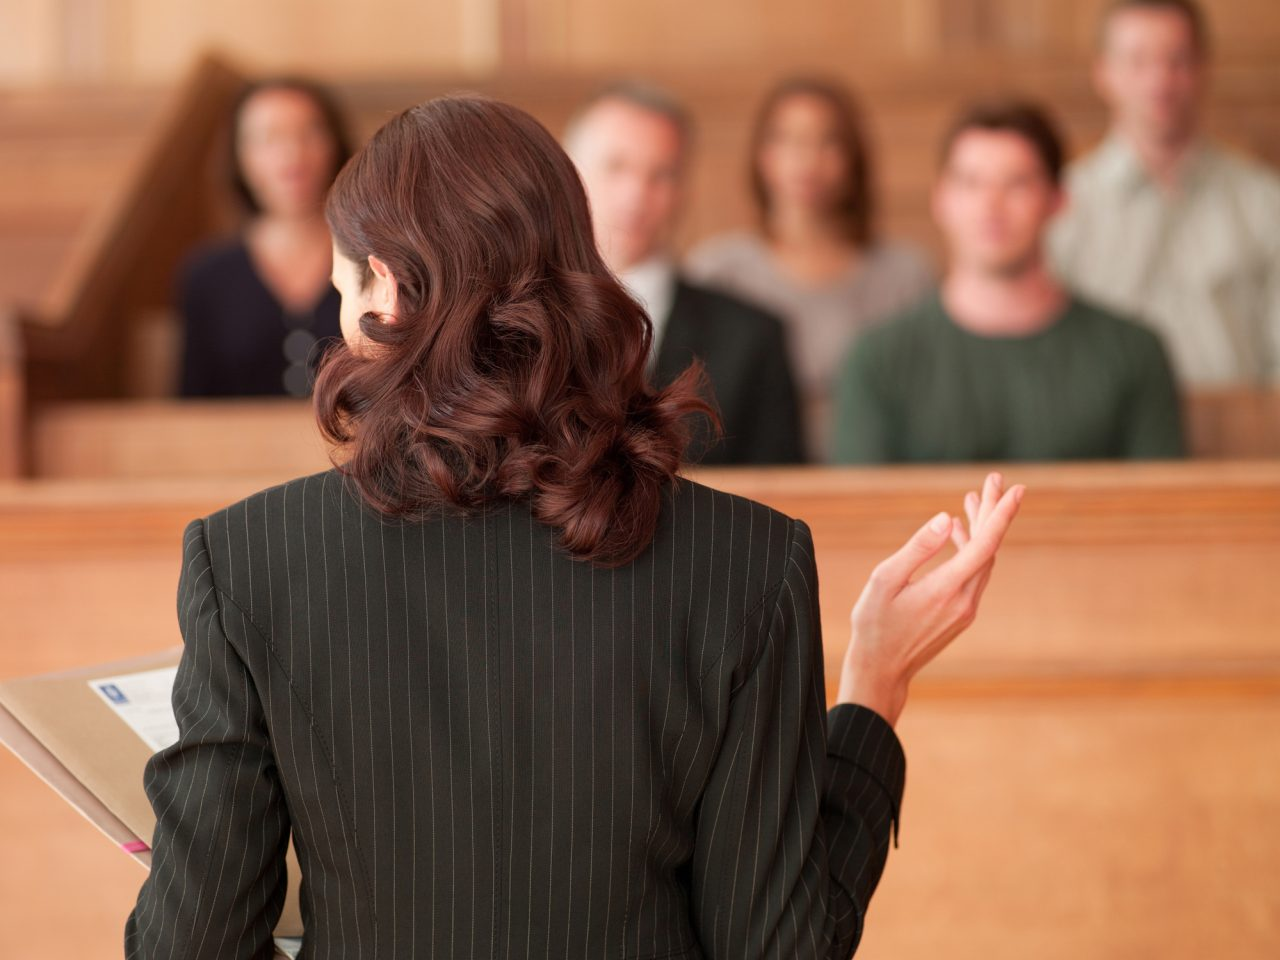 Female lawyer presenting her case to a jury